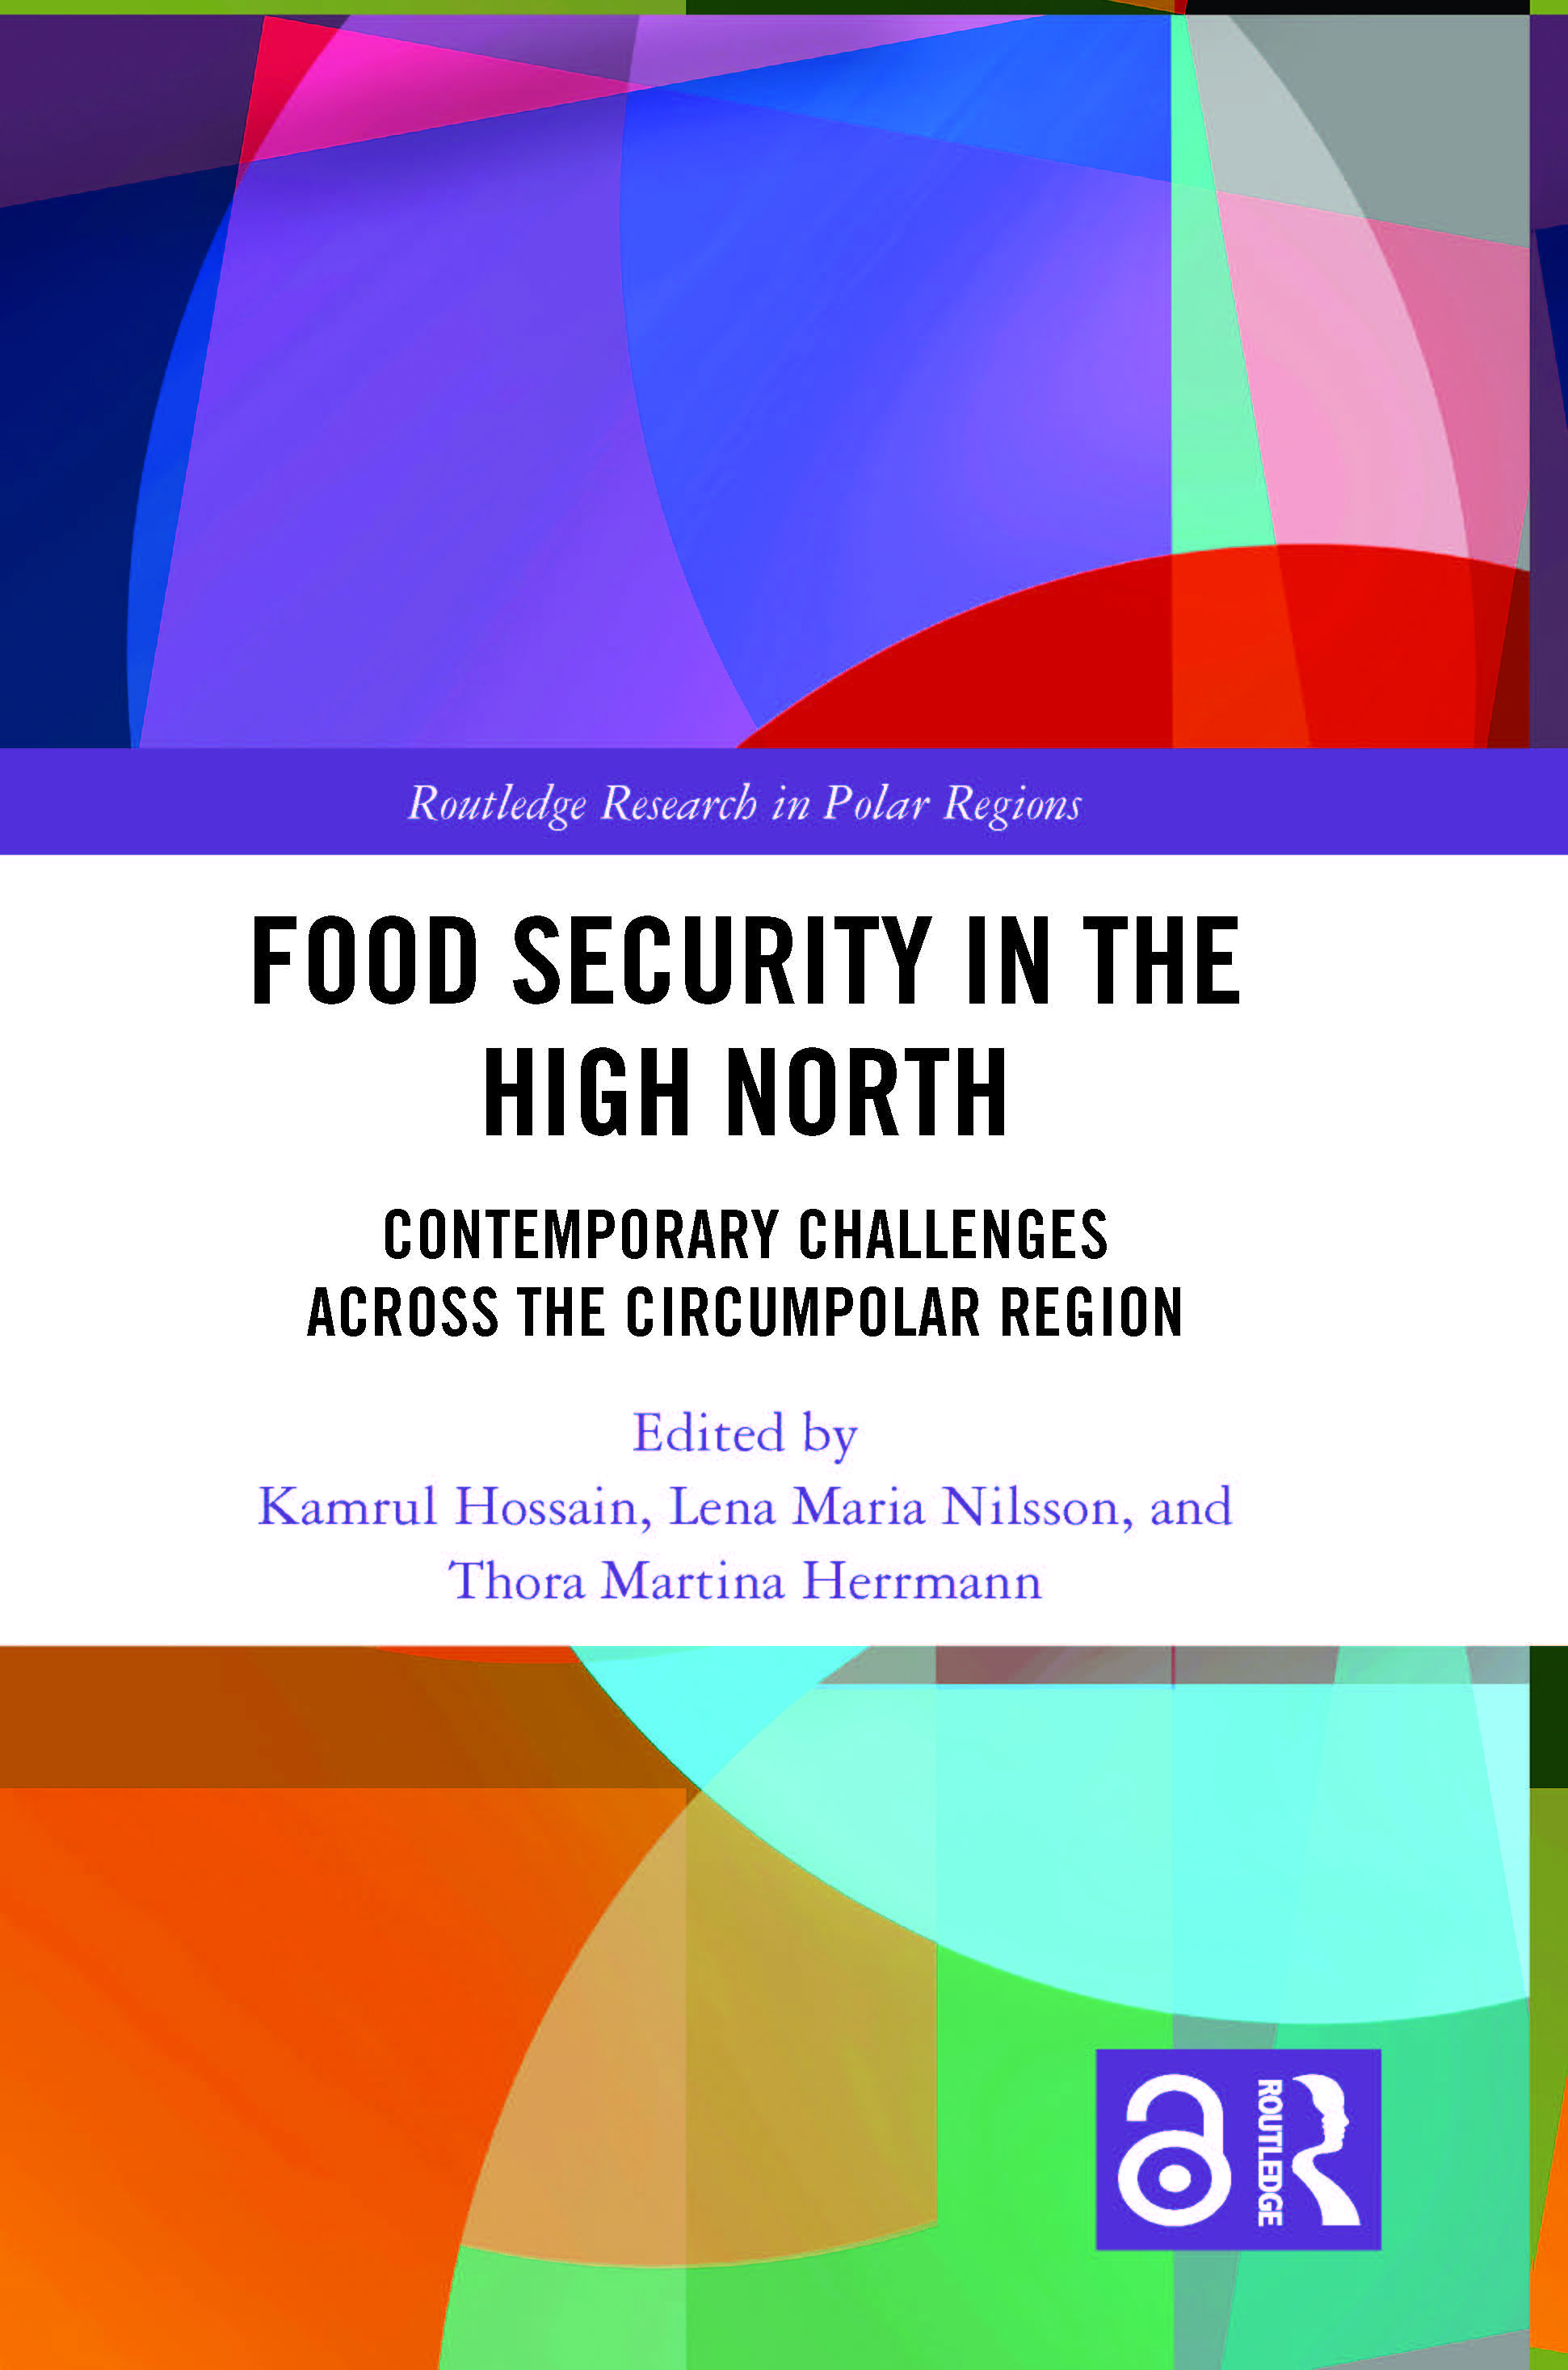 Food Security in the High North: Contemporary Challenges Across the Circumpolar Region book cover